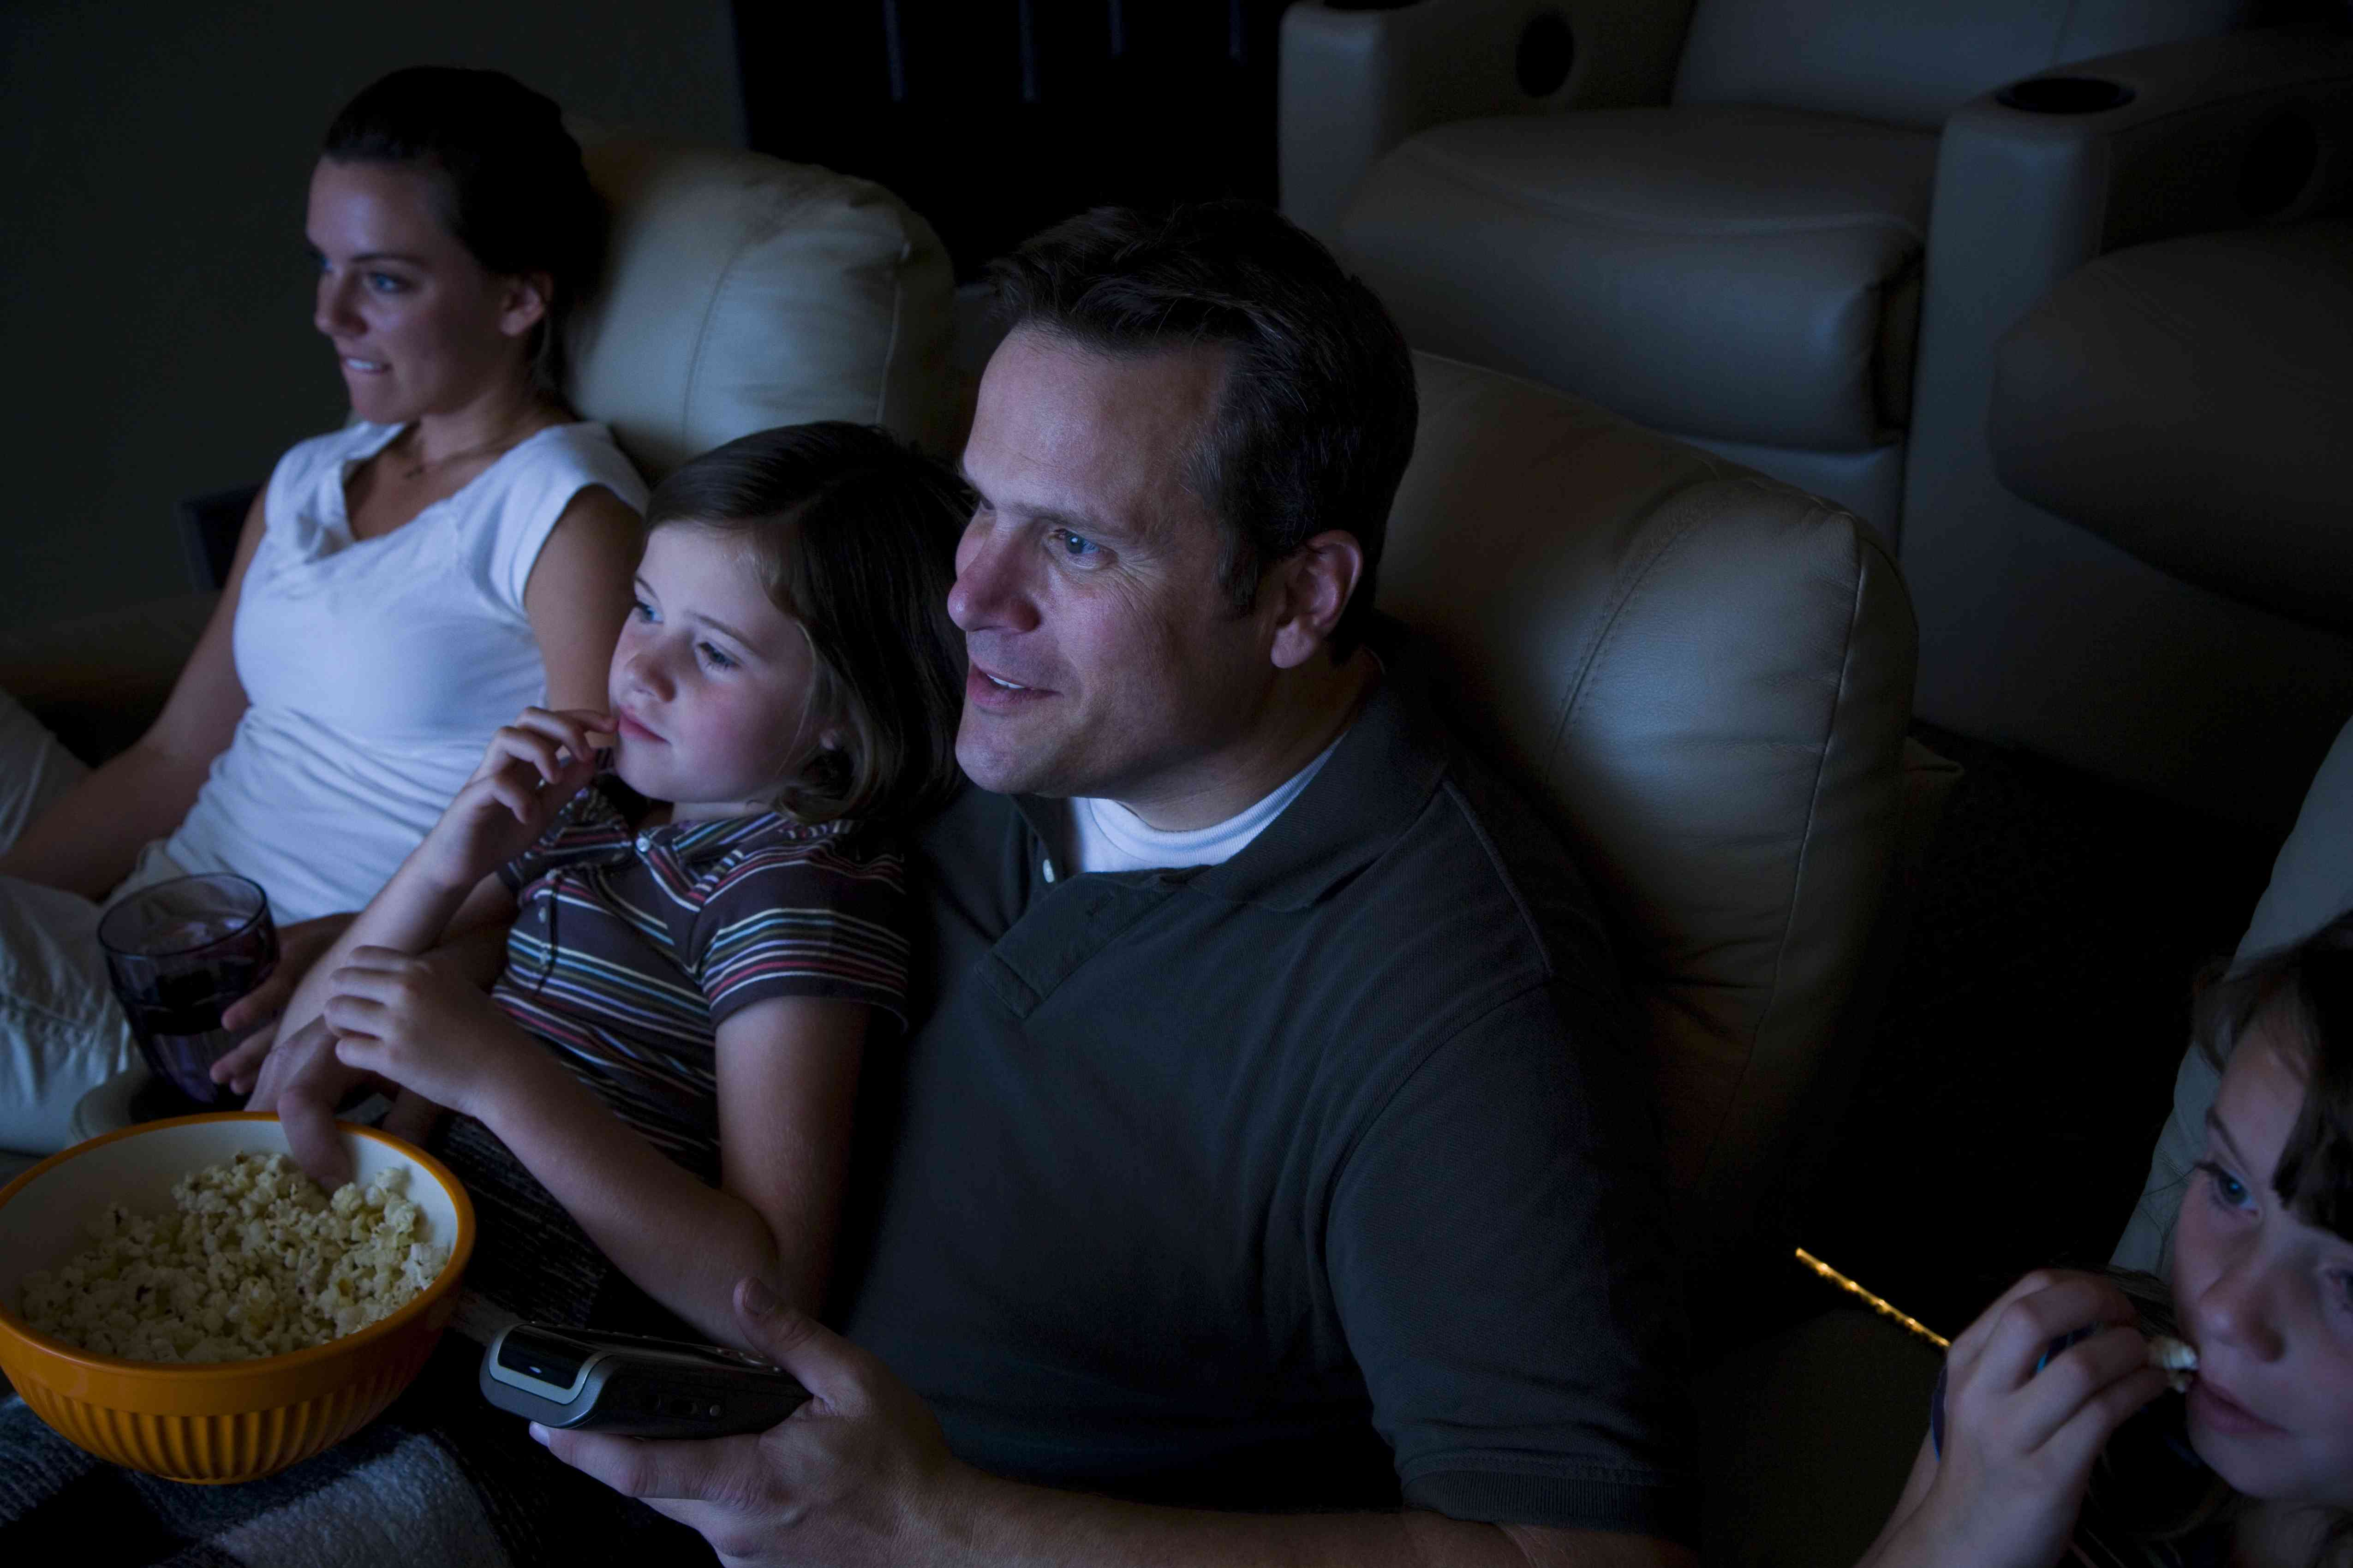 People watching a movie in their home theater